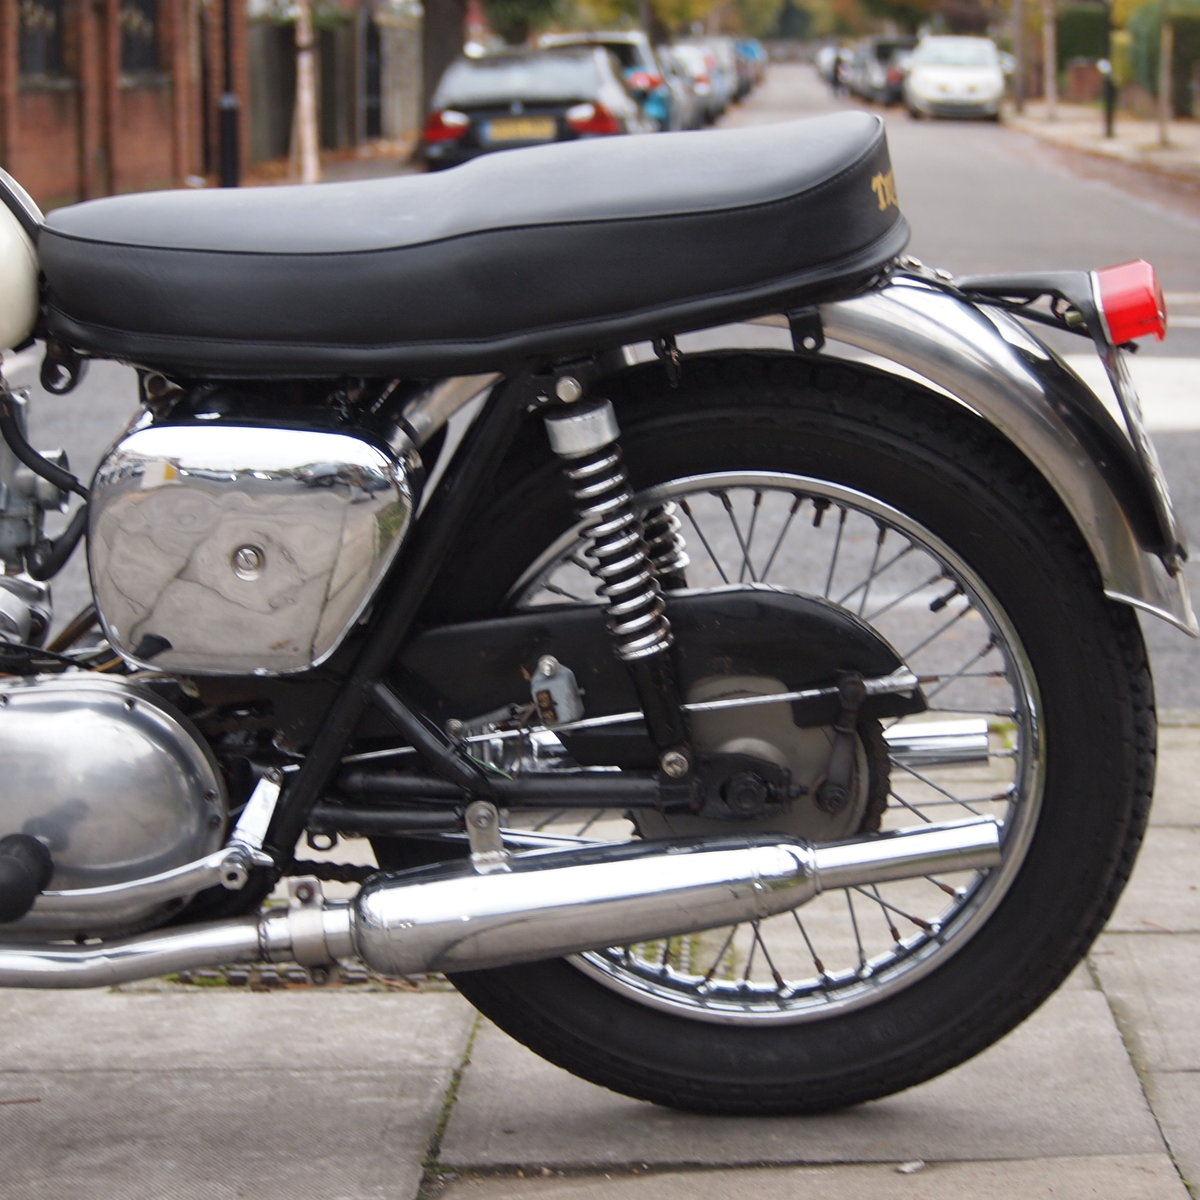 1962 T110 Tiger 650cc RESERVED FOR BRIAN. SOLD (picture 3 of 6)